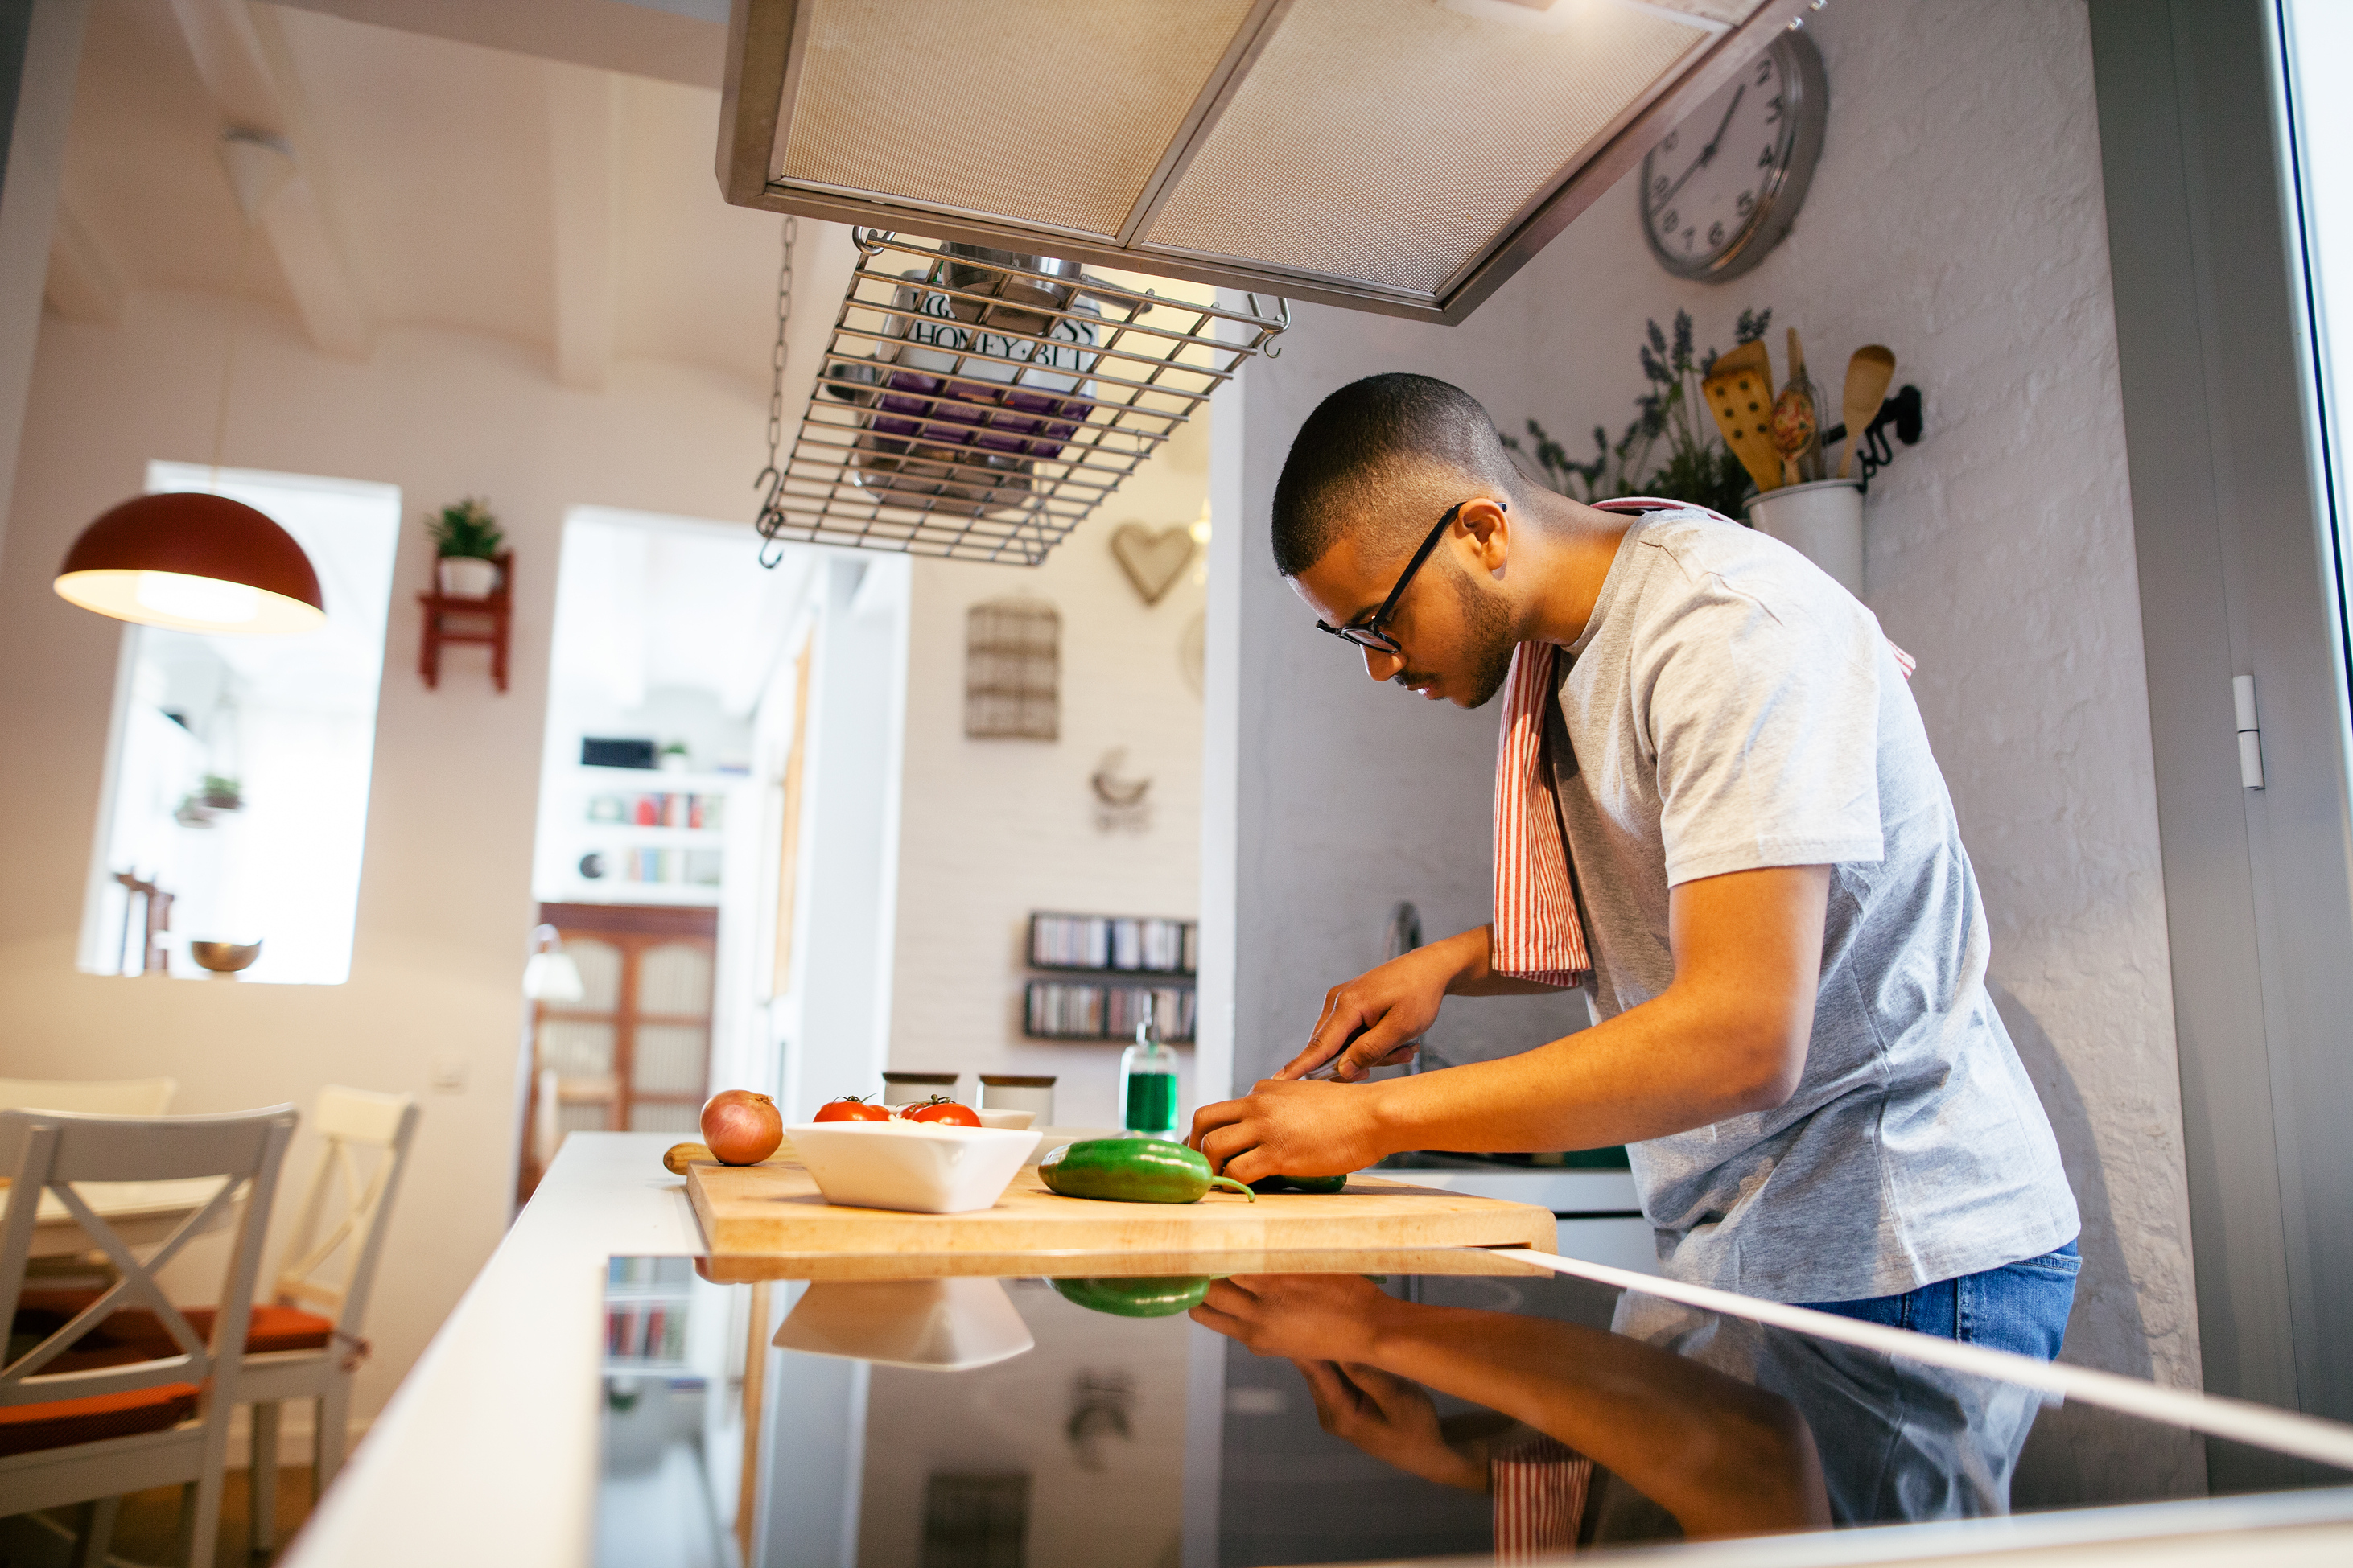 Black man cutting food in his kitchen